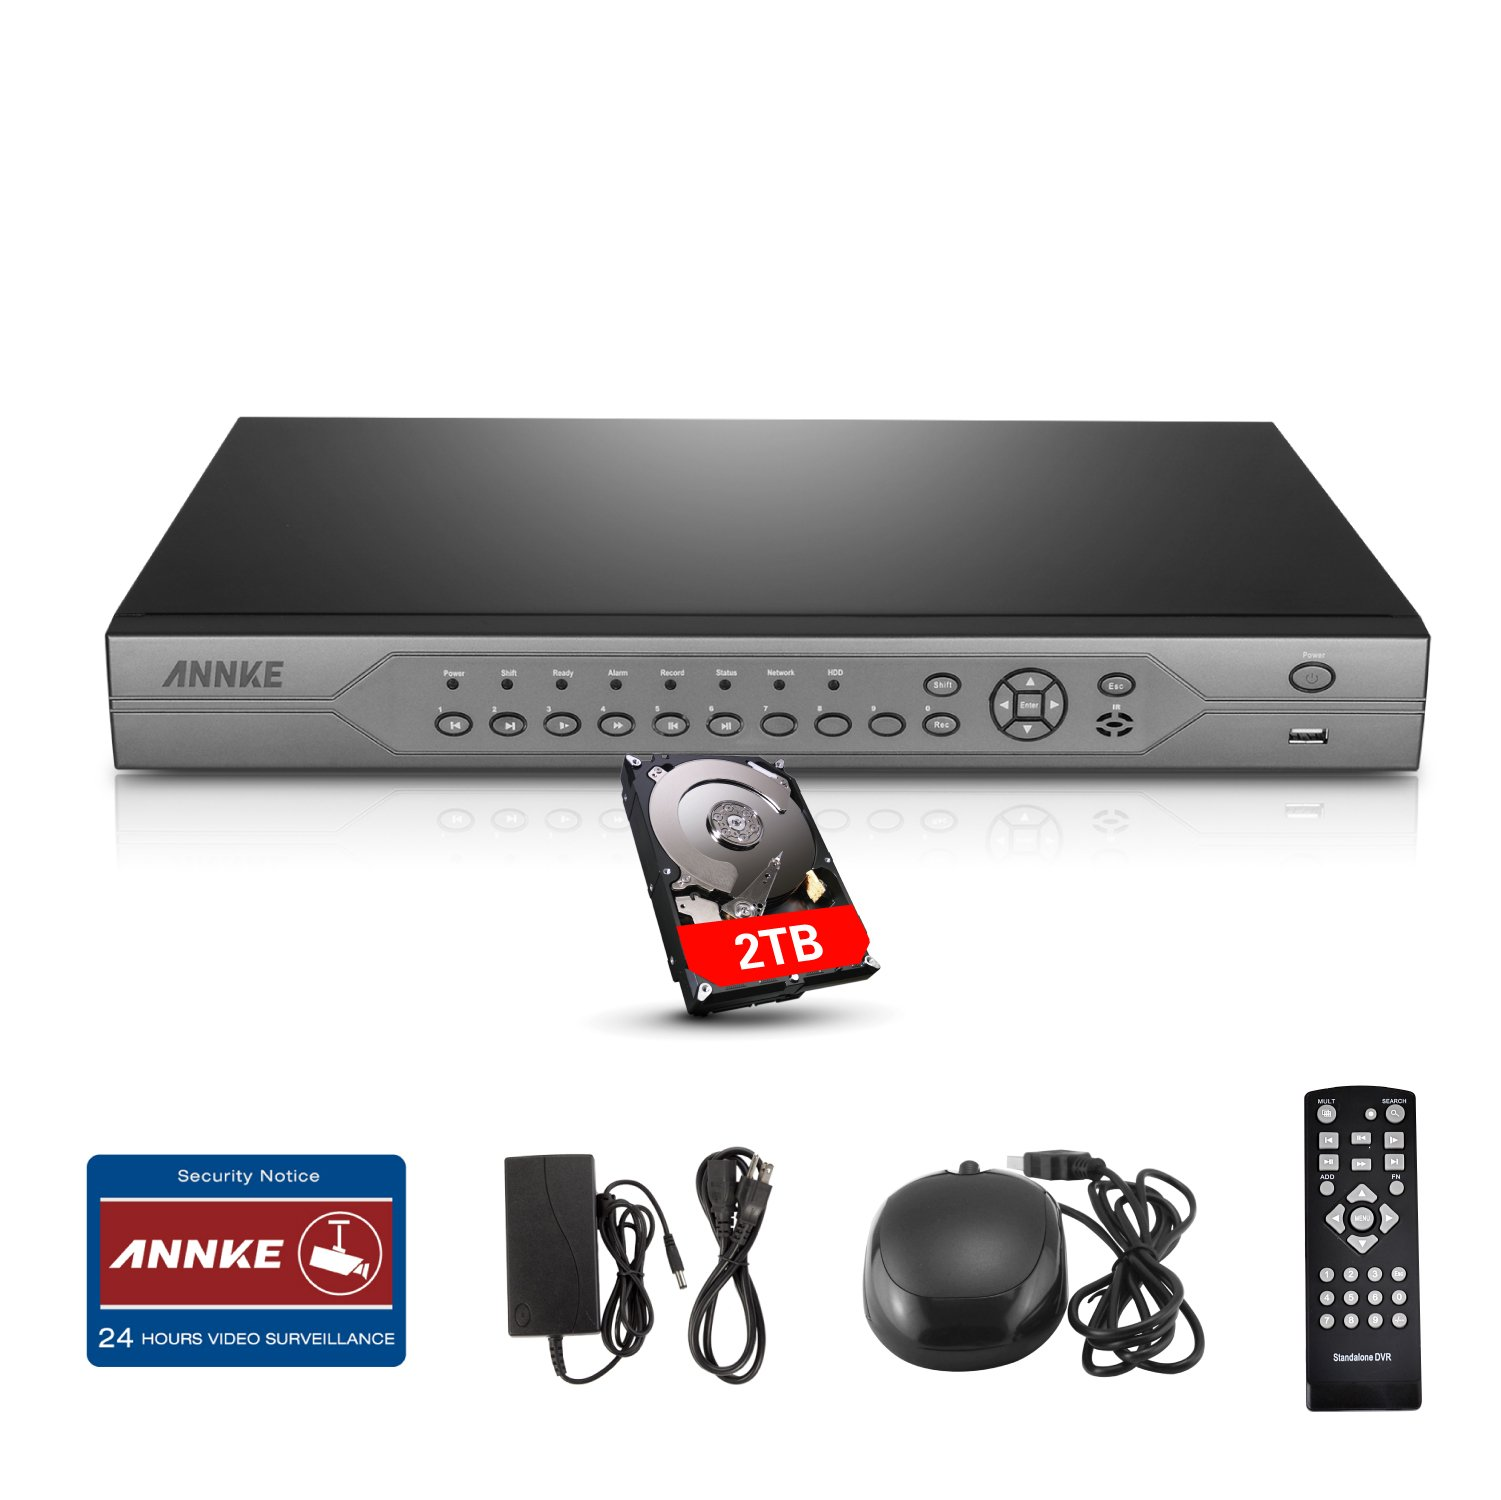 ANNKE 5-in-1 32 Channel 720P HD Surveillance Digital Video Recorder with 2TB HDD, P2P Technology, QR Code Scan Remote Access and Smart Motion Detection Alert